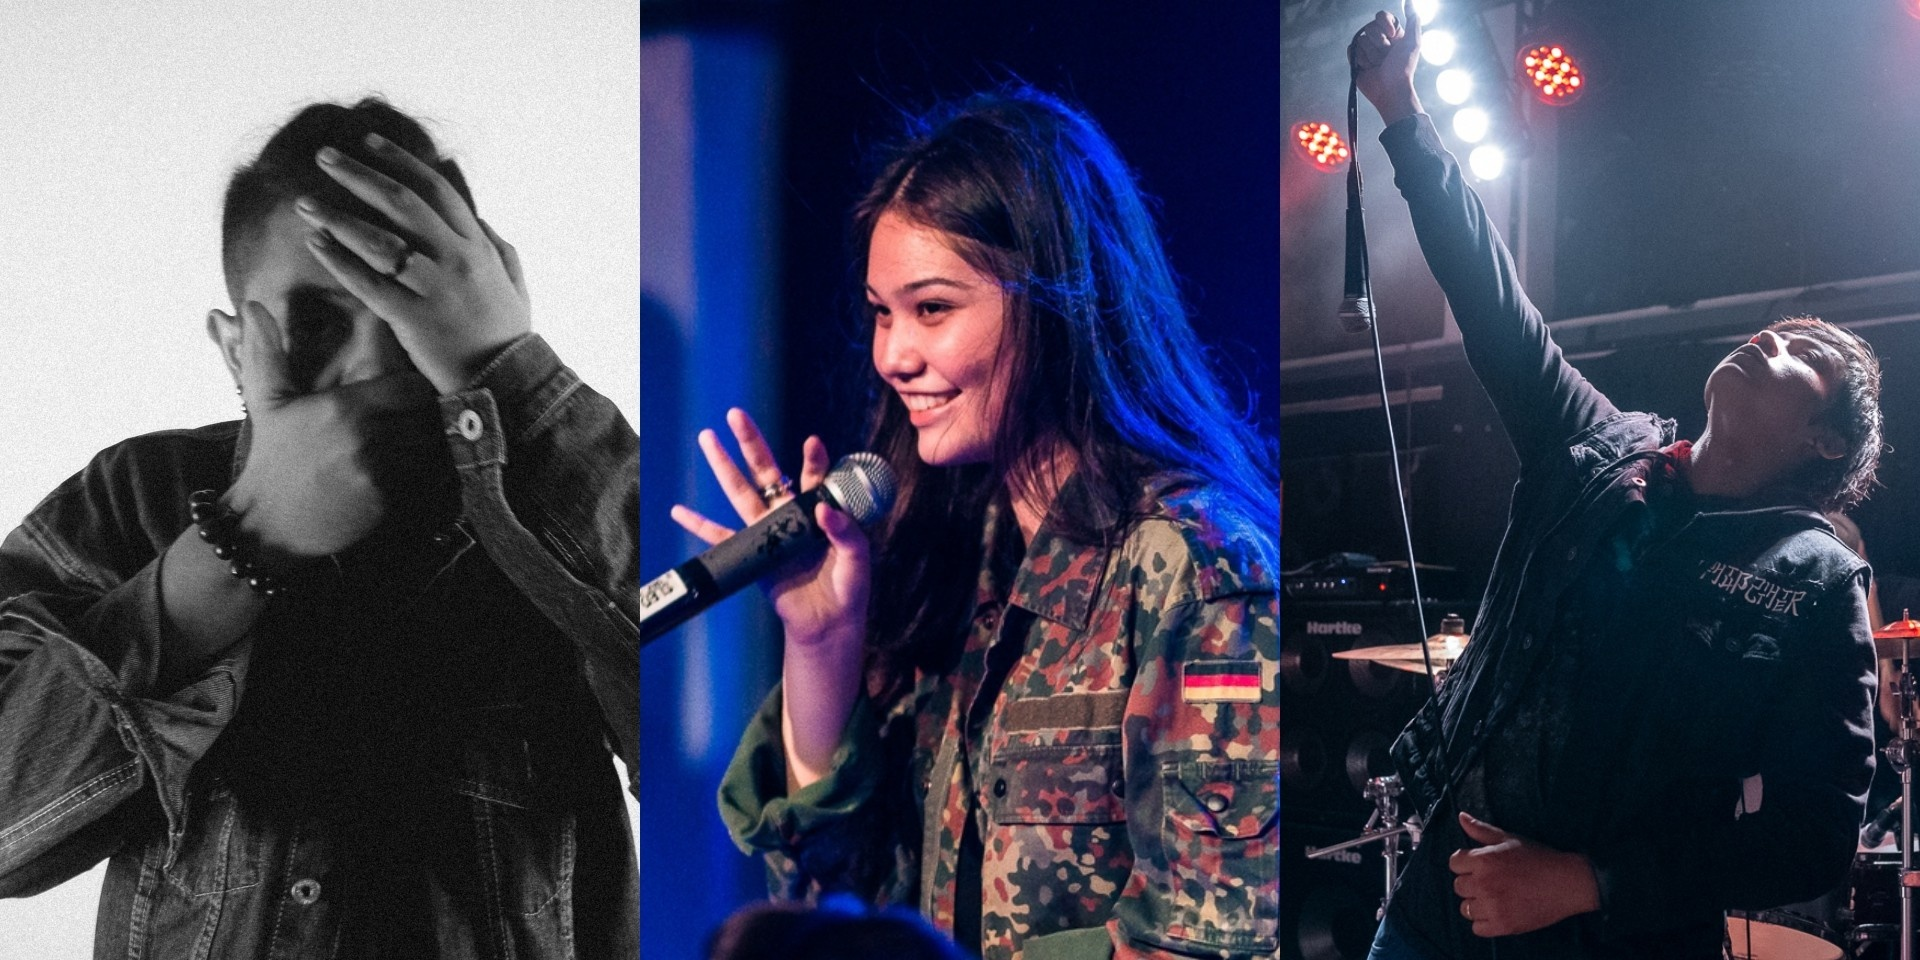 Akeem Jahat, Wormrot, Shye and more to perform at House of Vans